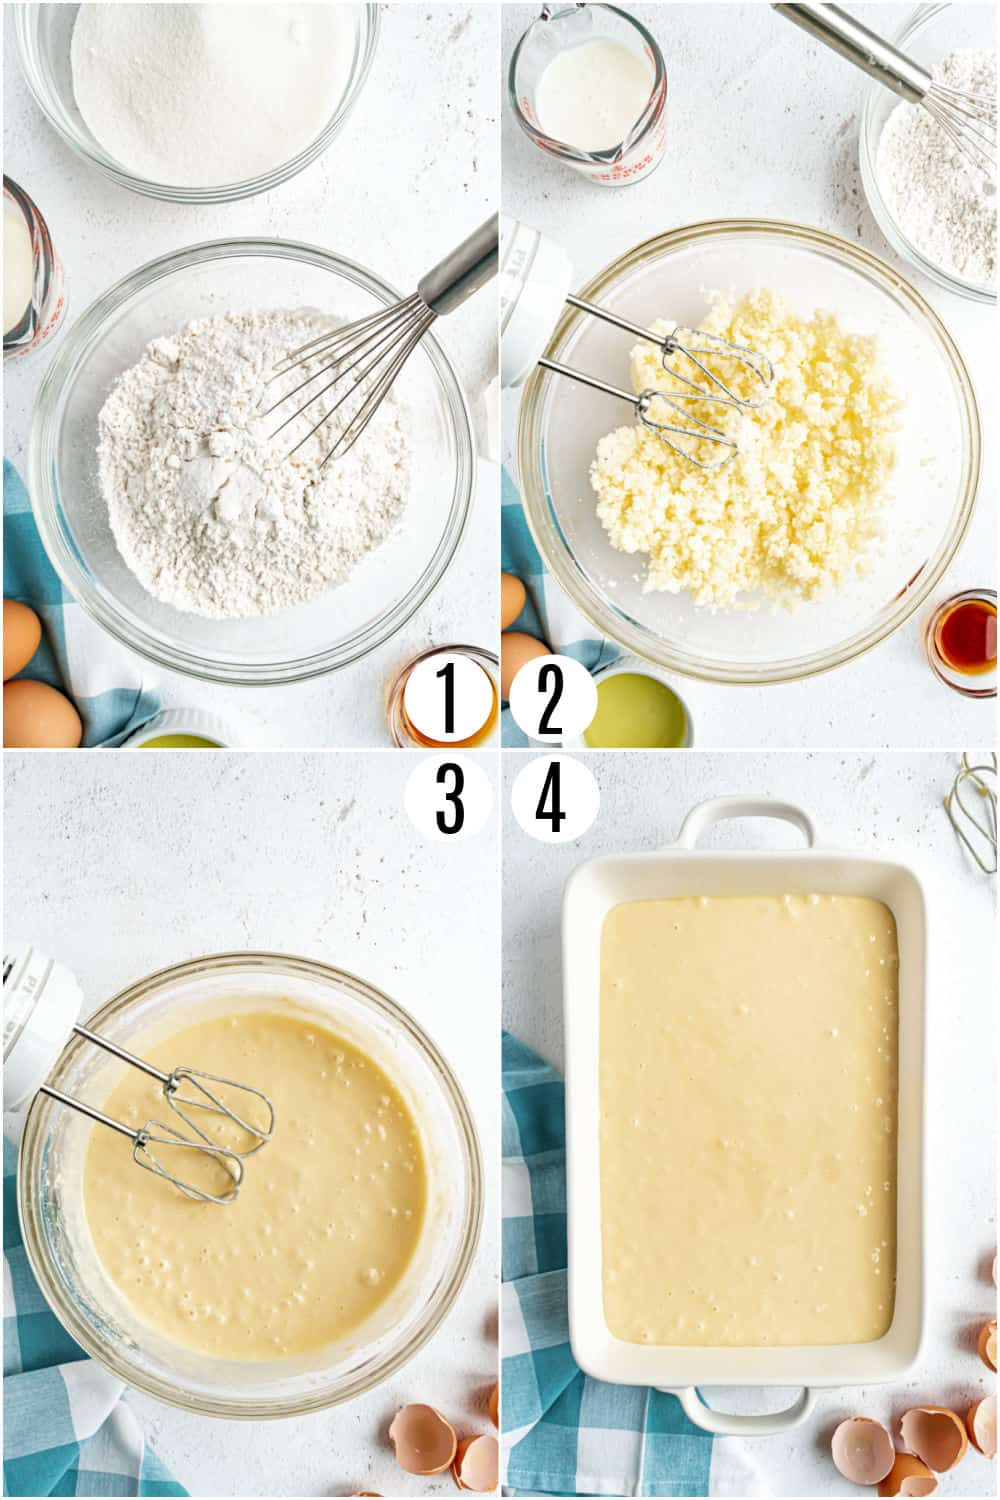 Step by Step photos showing how to make a vanilla sheet cake.